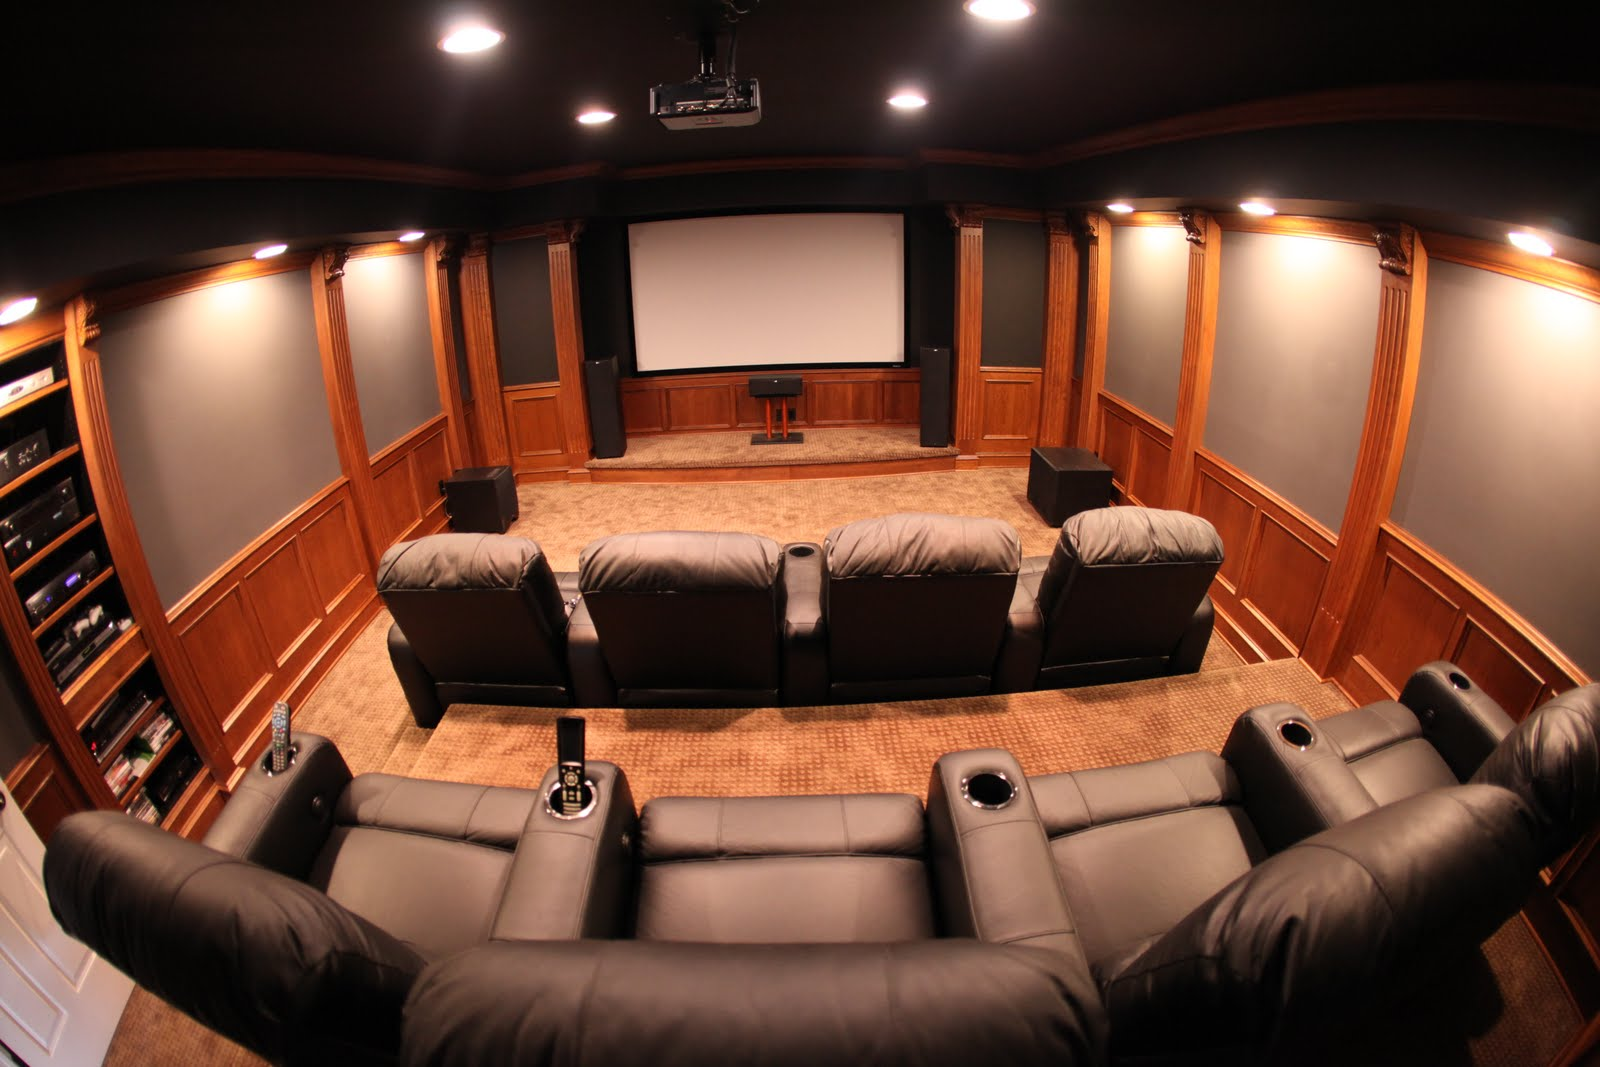 Mhi interiors theater room novi mi for Small room movie theater